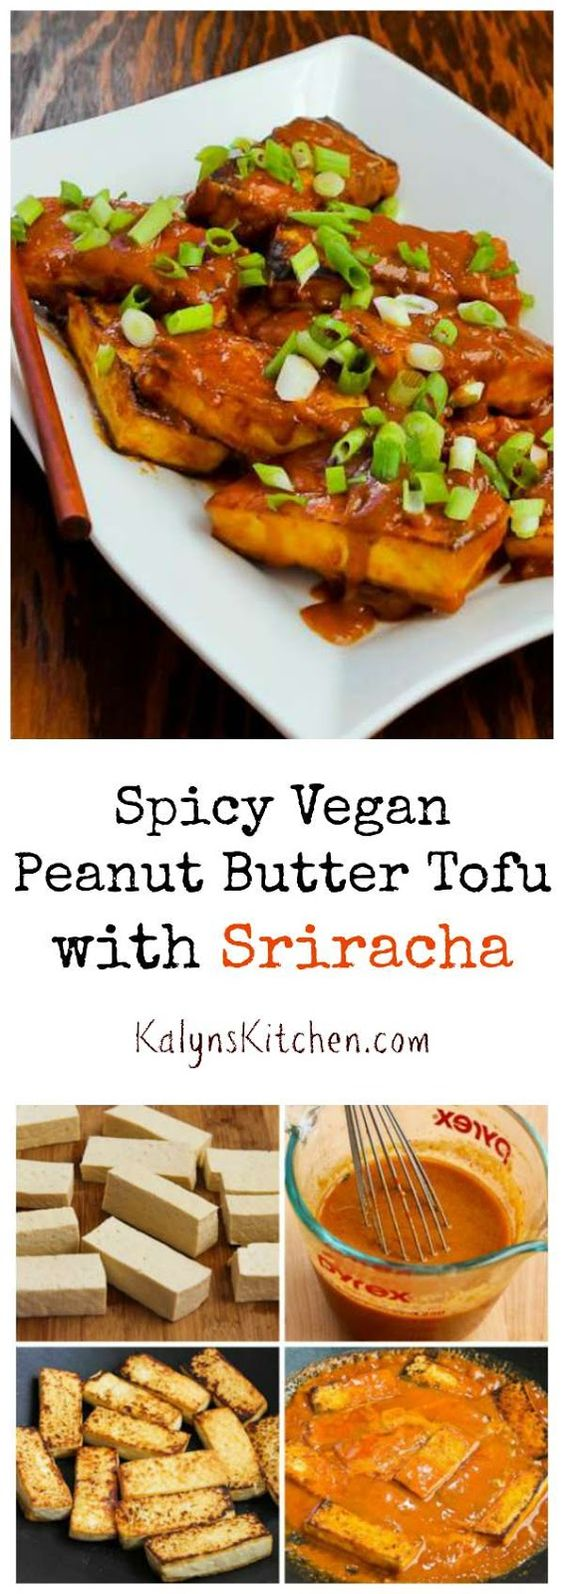 delicious recipe for Spicy Vegan Peanut Butter Tofu with Sriracha